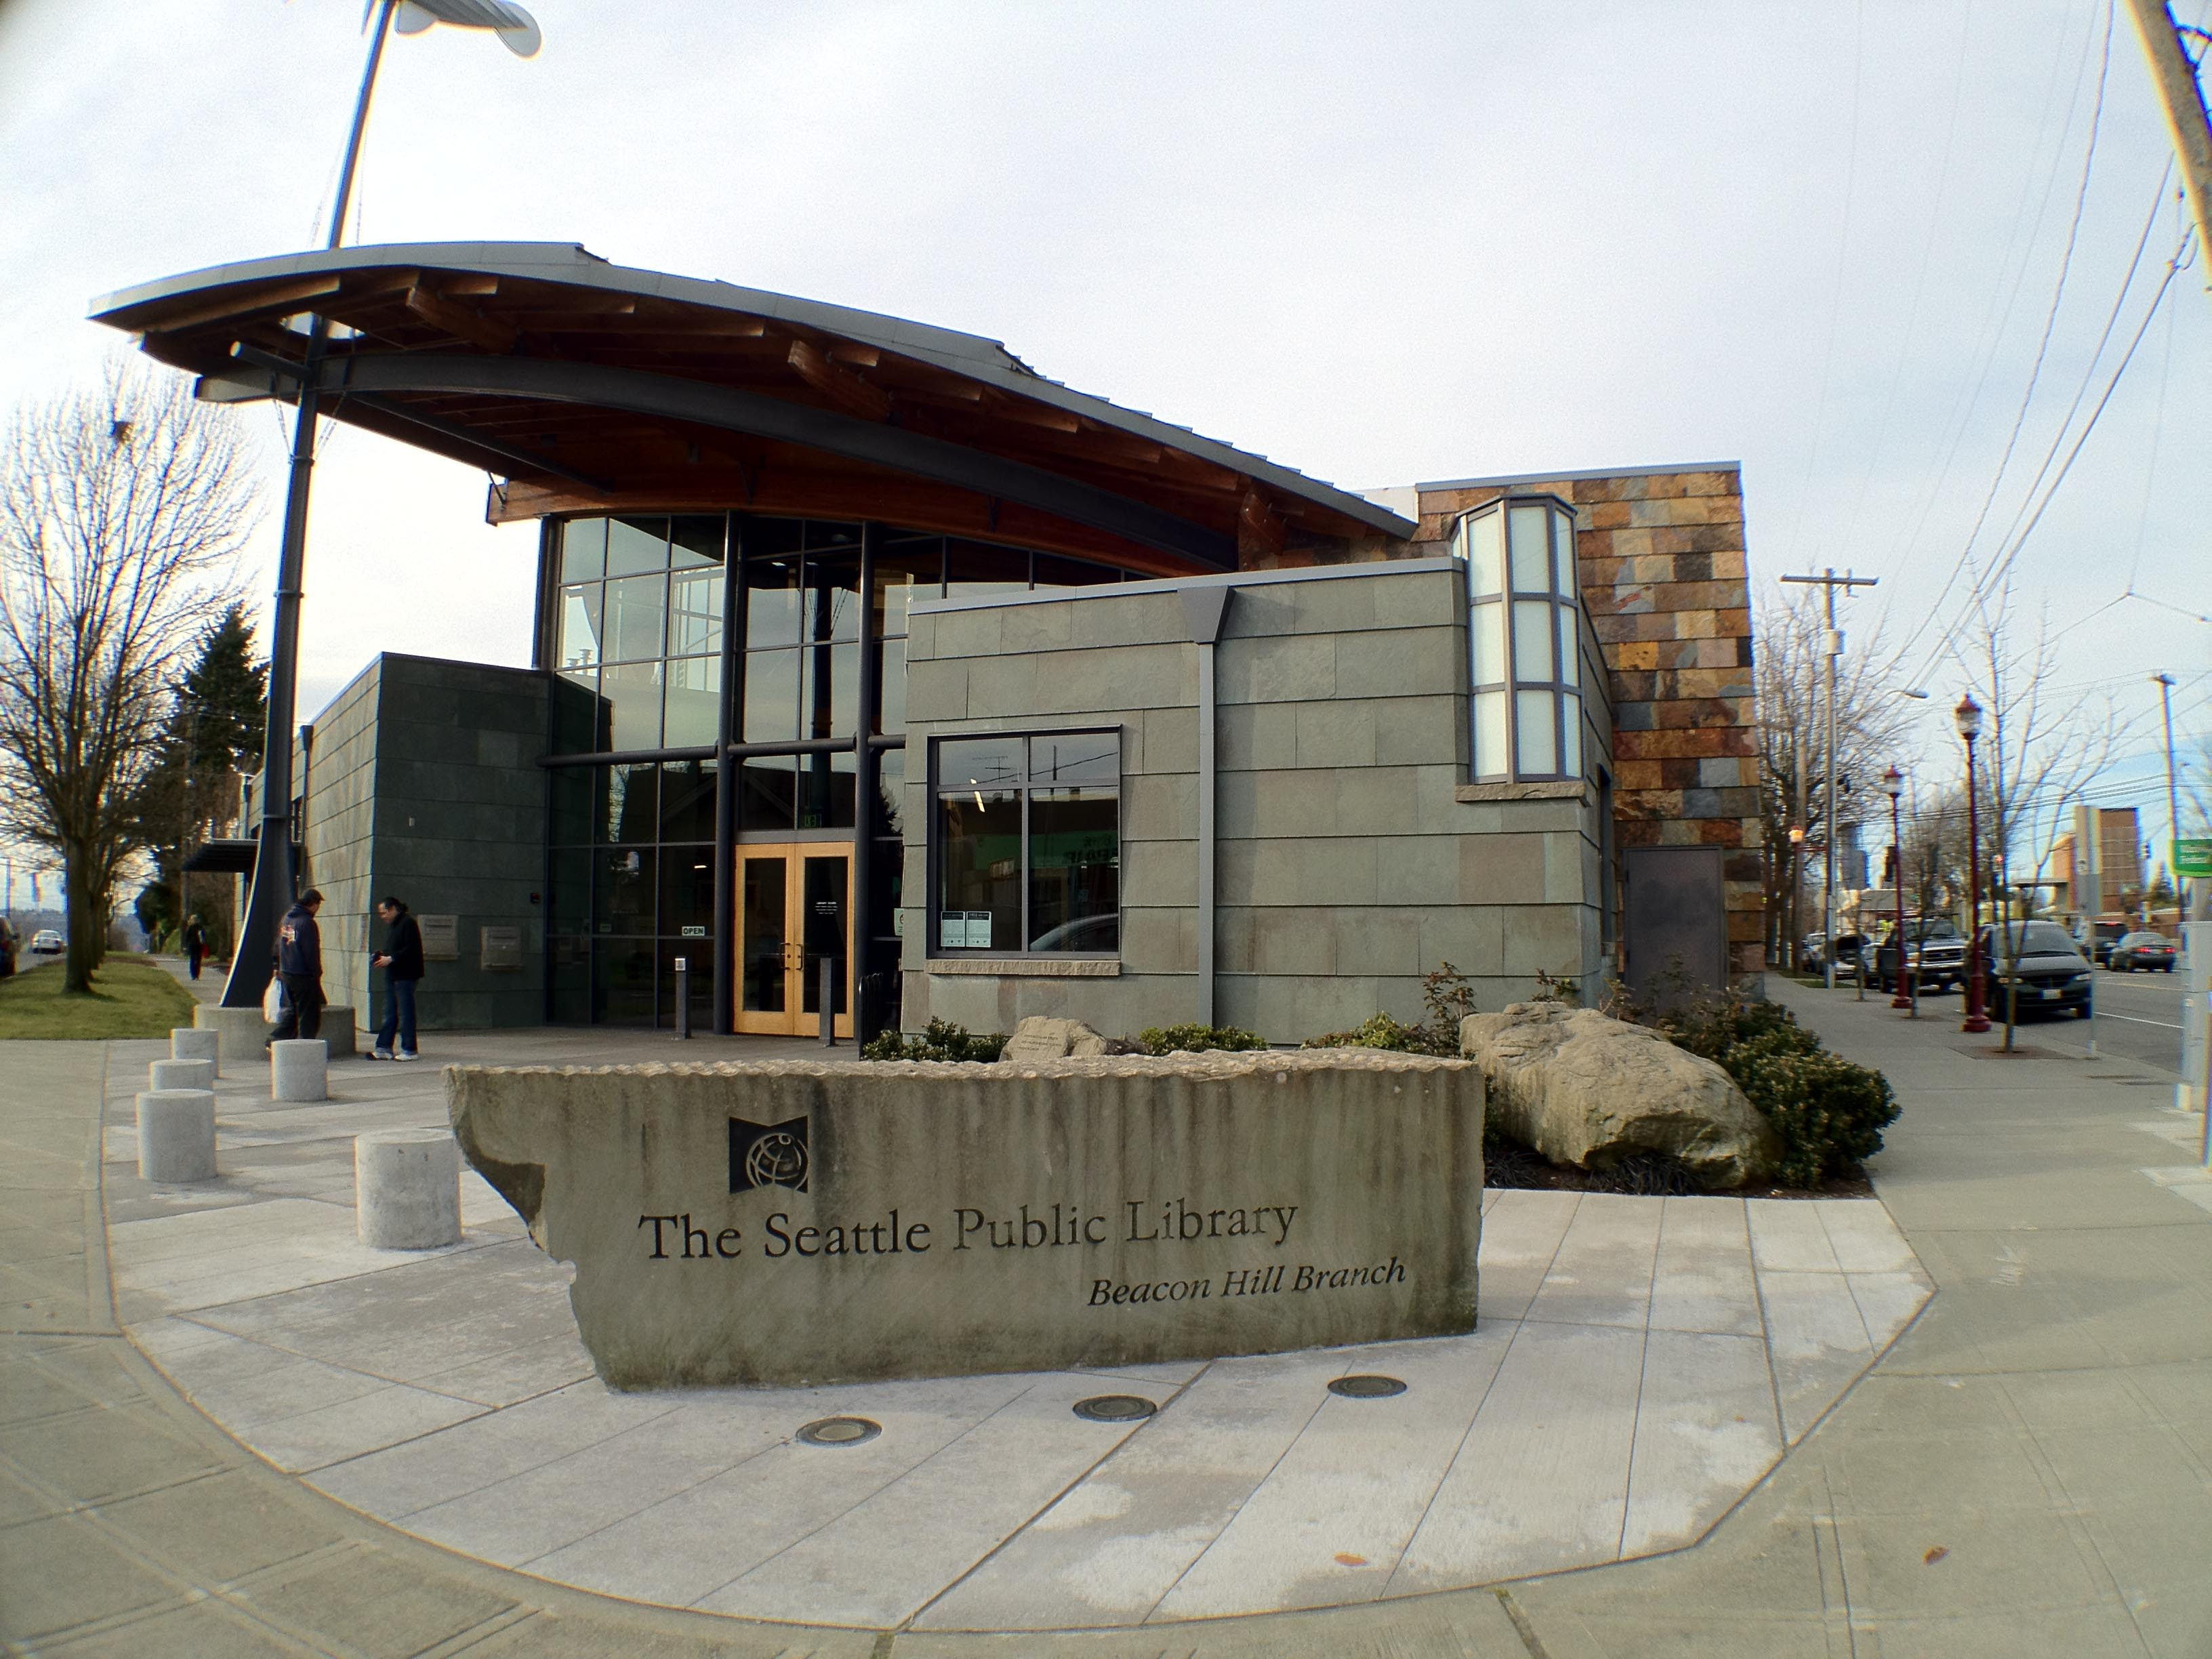 Seattle Public Library – Beacon Hill